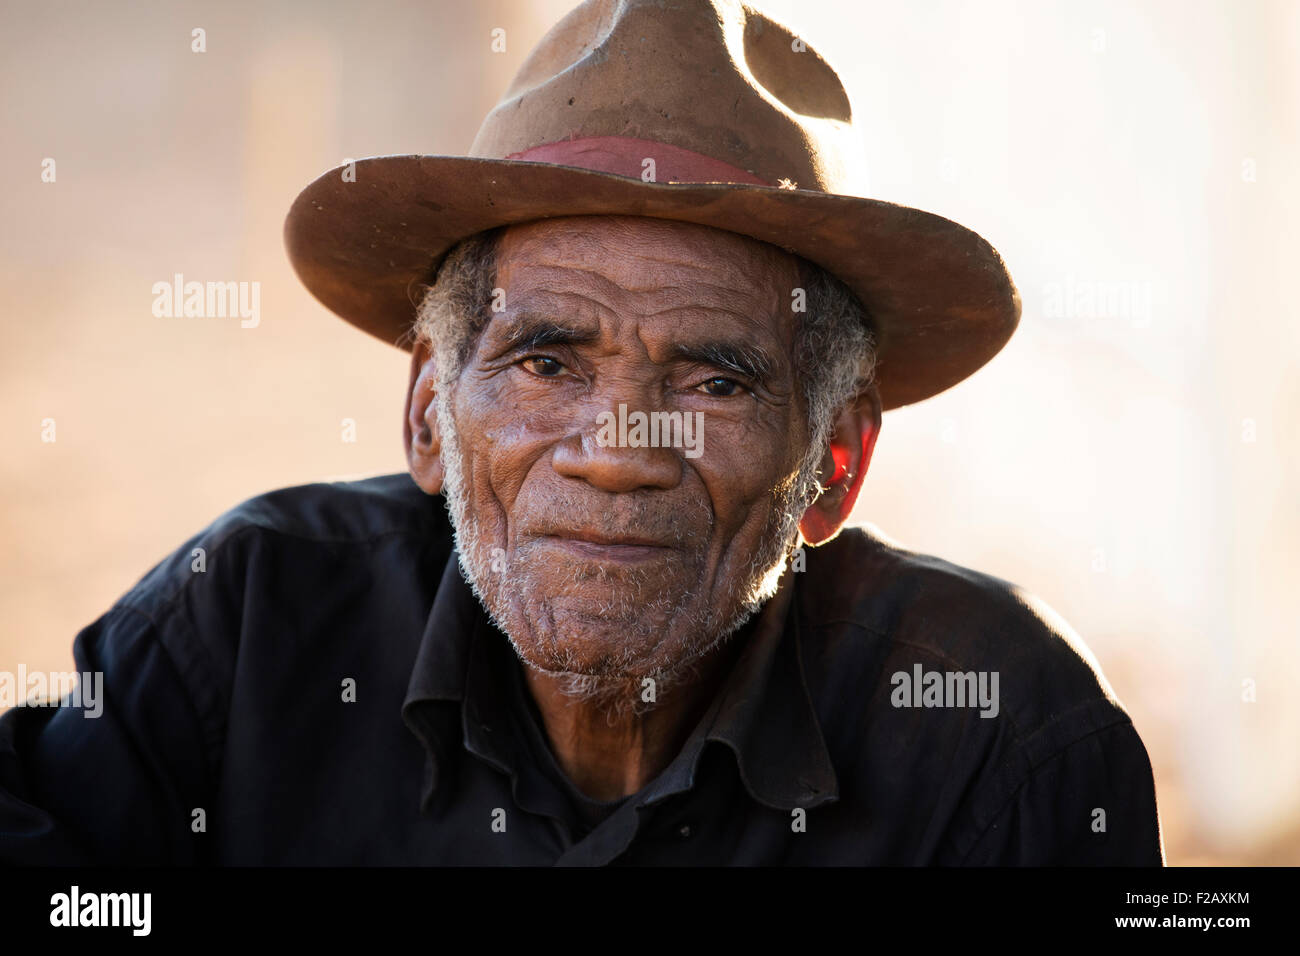 Close up portrait of Malagasy old man with hat in Bekopaka, Antsalova, Melaky, Madagascar, Southeast Africa - Stock Image